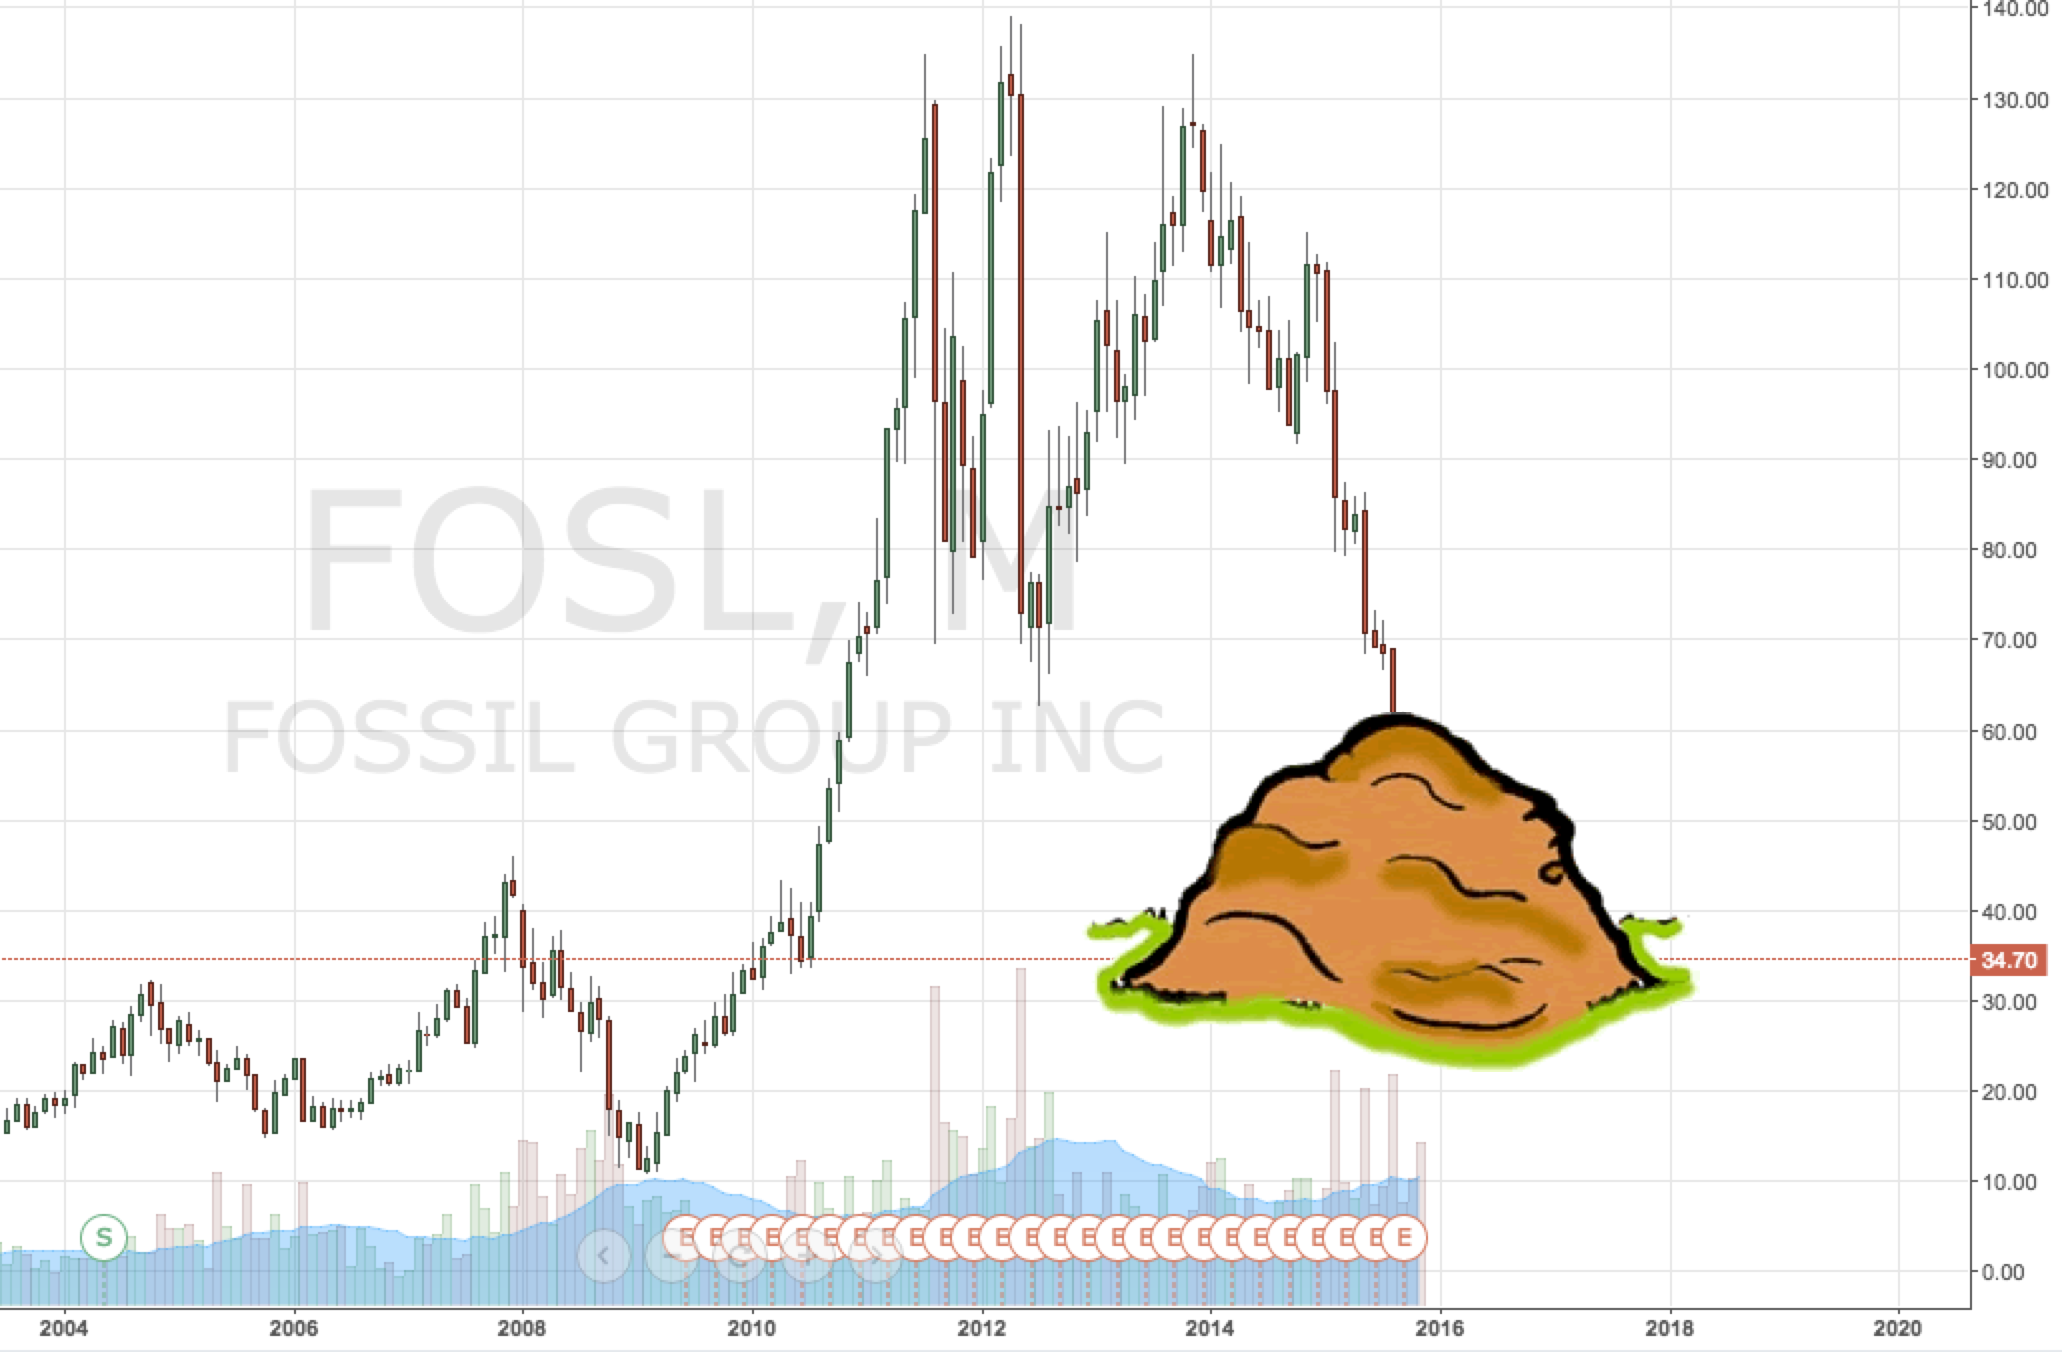 Fossil Fosl Getting Buried Pun Intended With Images